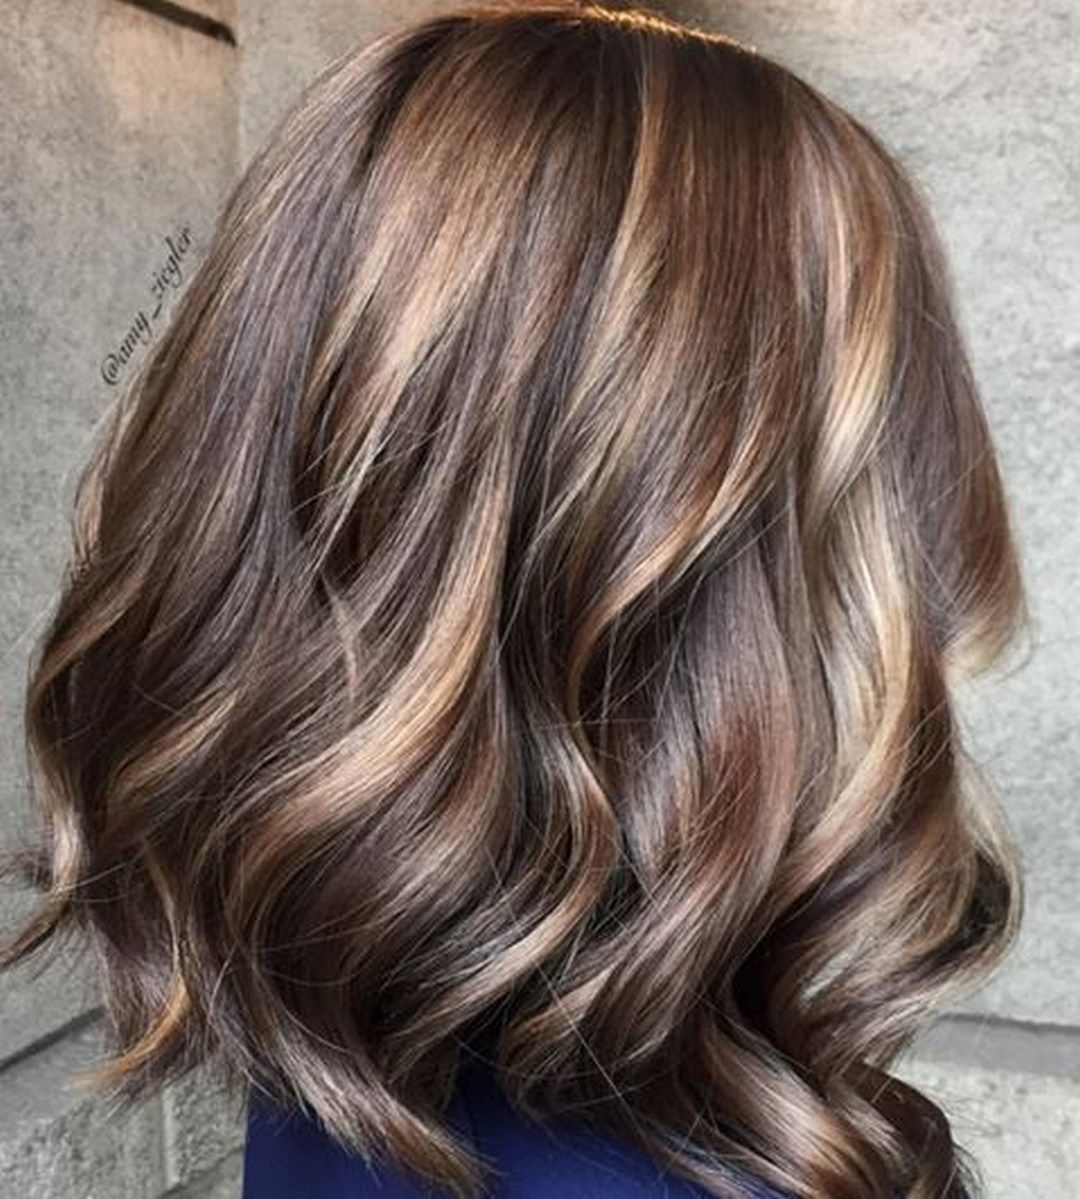 Burnette Hair Color Style Trends In